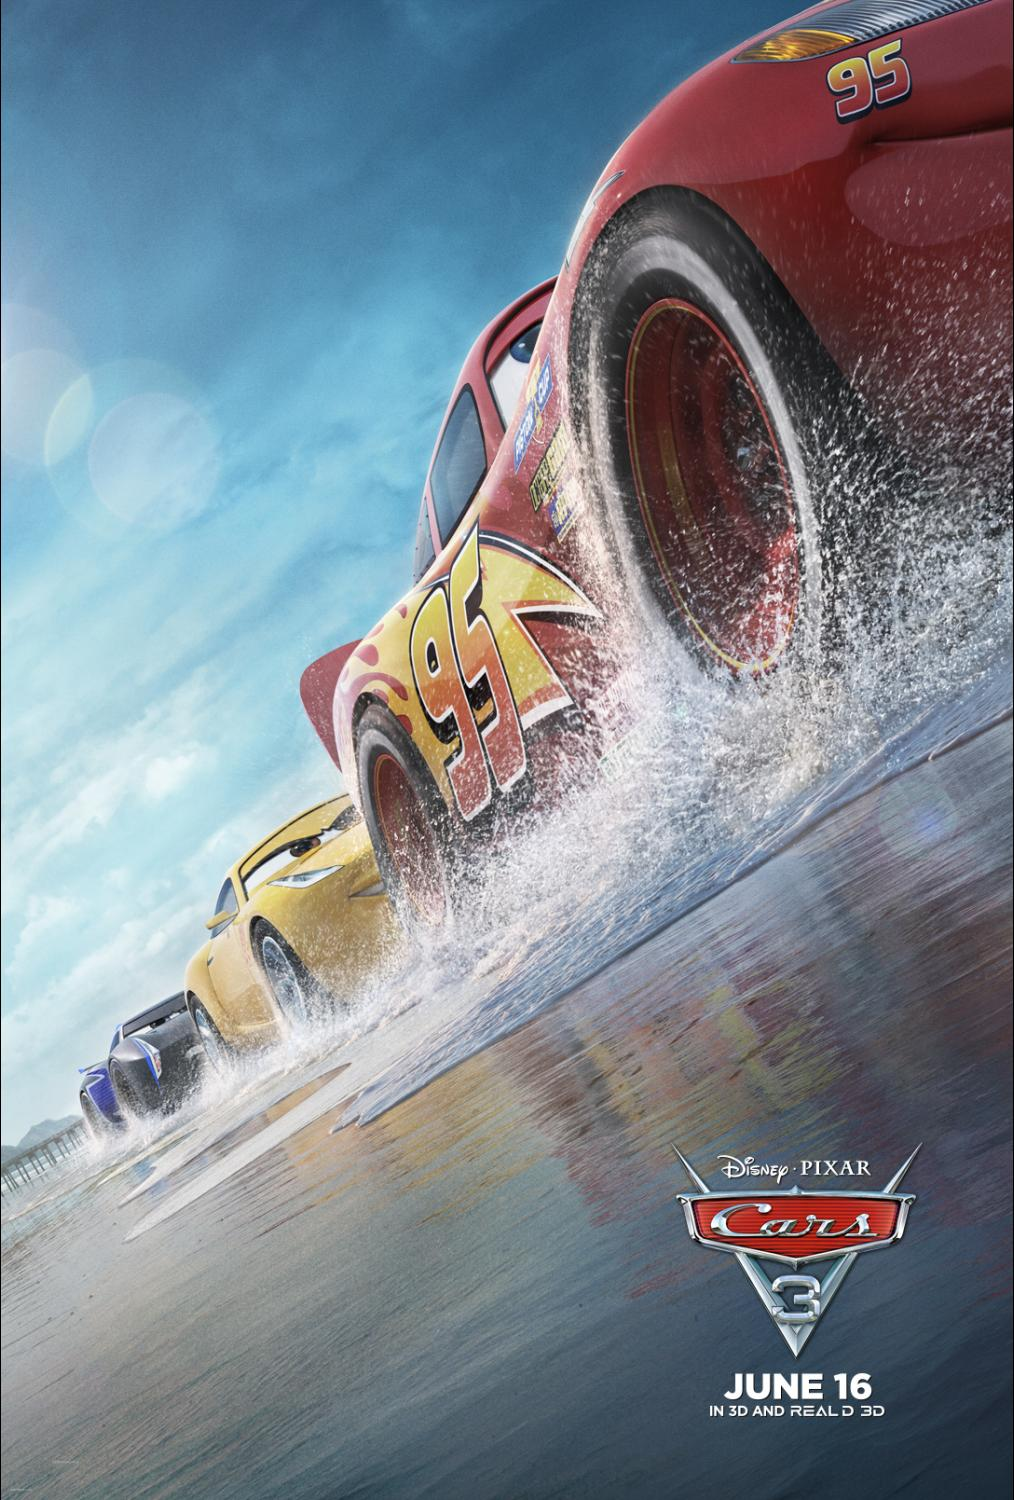 I'm heading to the Disney Pixar Cars 3 Red Carpet and More!